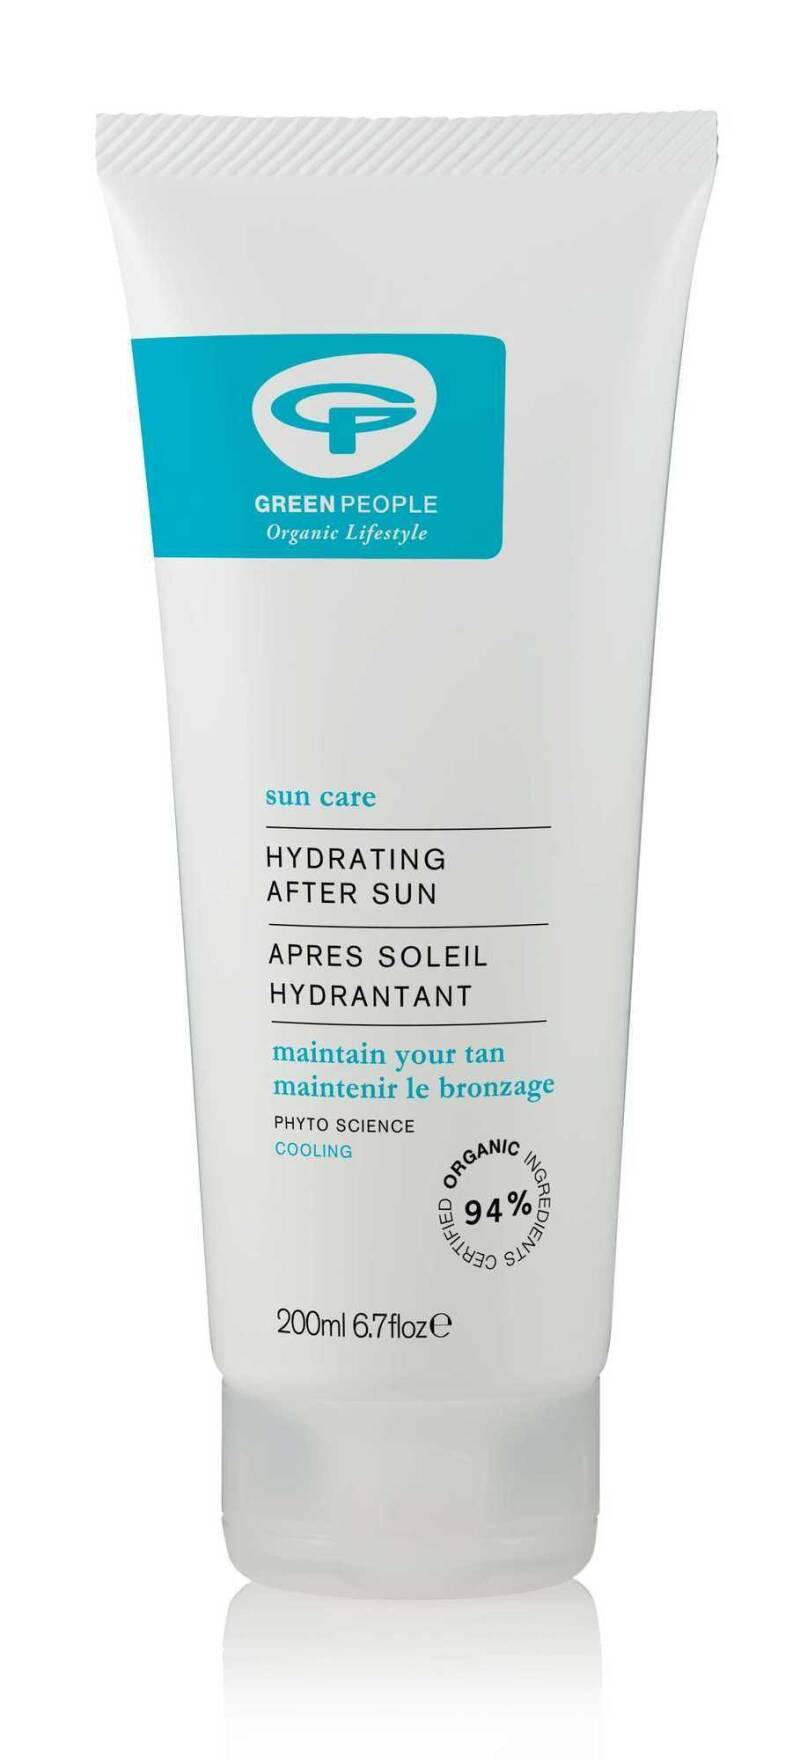 GREEN PEOPLE - Hydrating After Sun 200ml